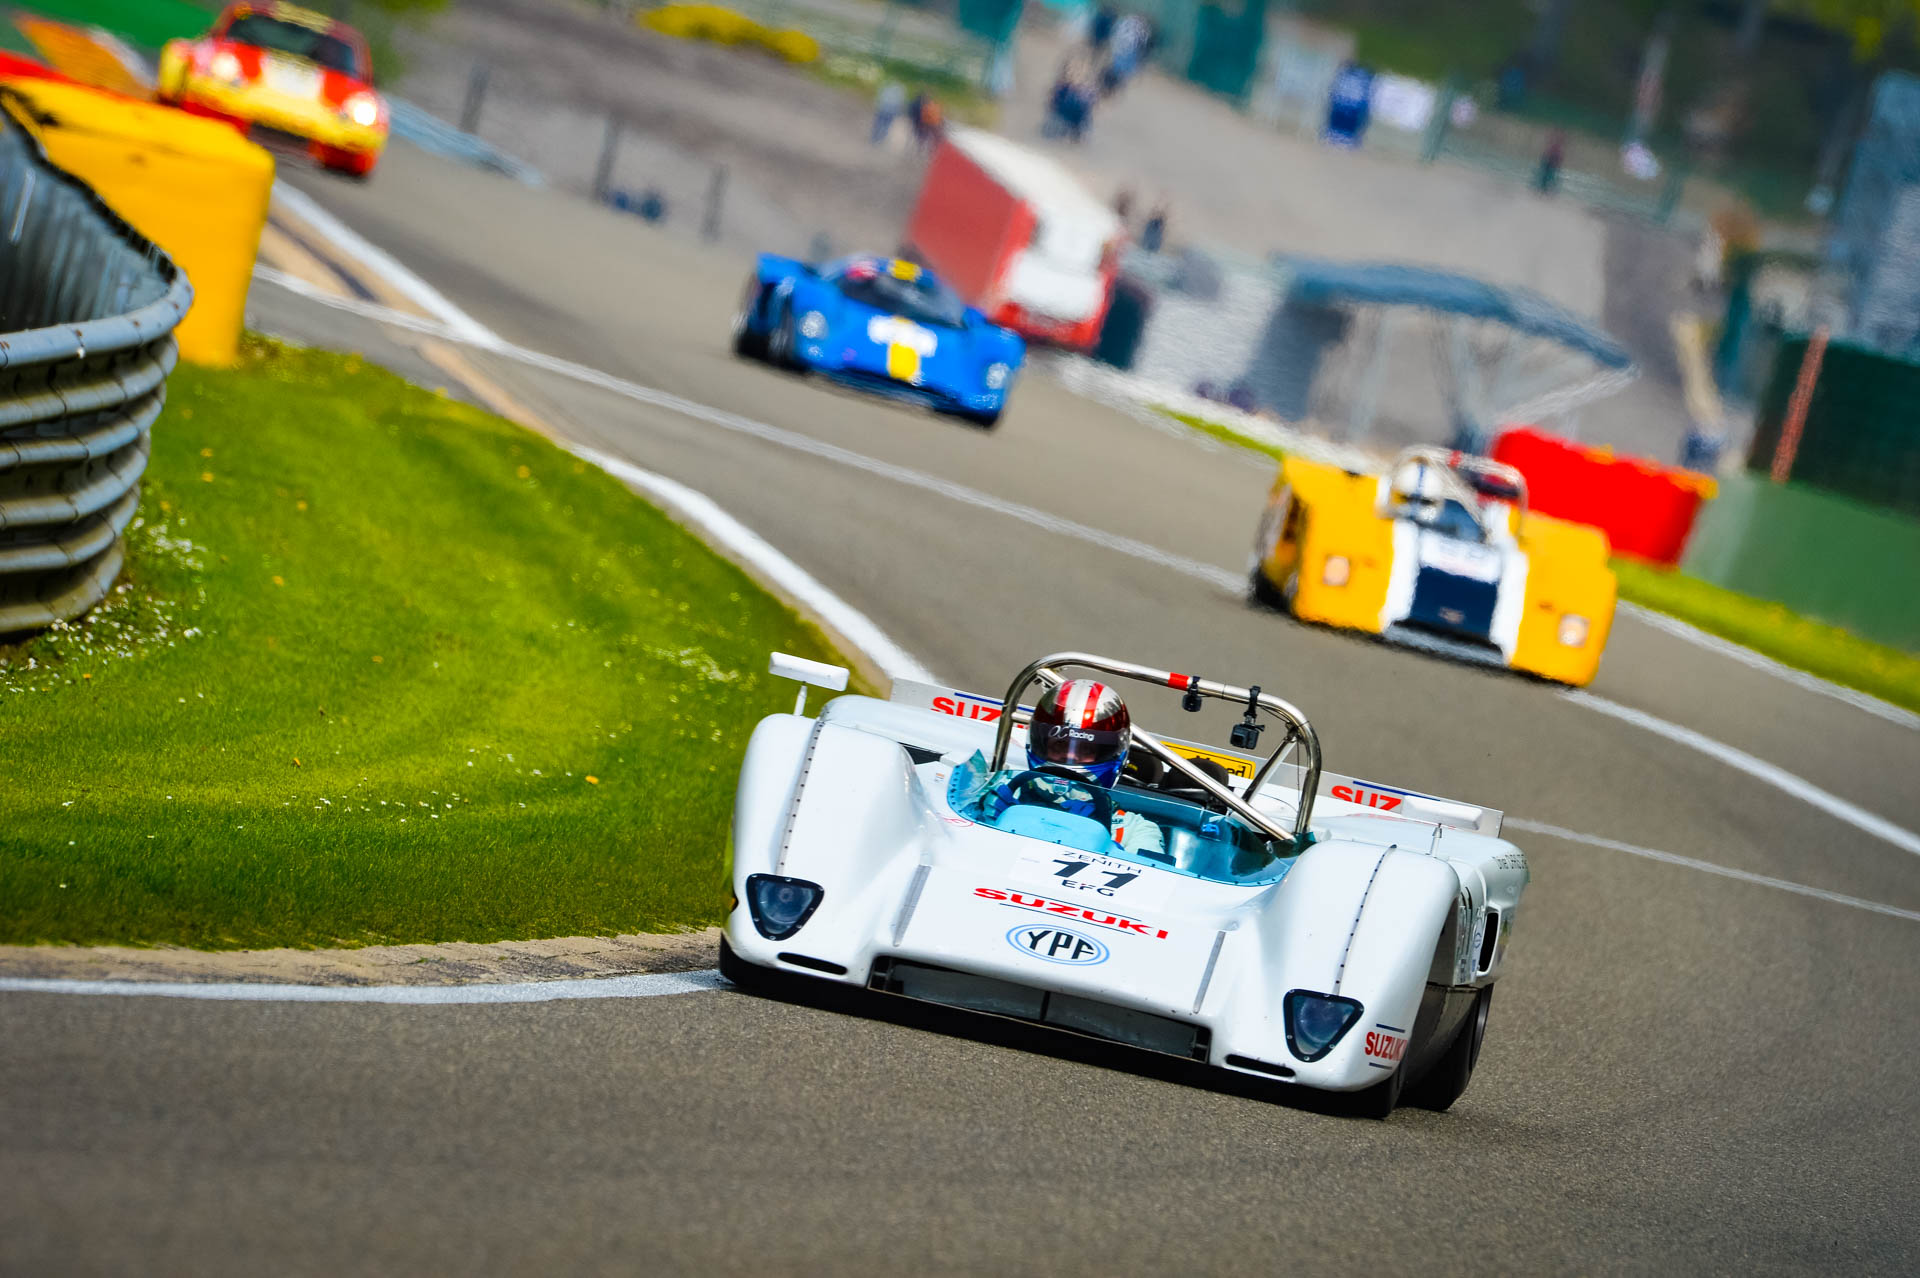 Spa Classic 2020 cancelled